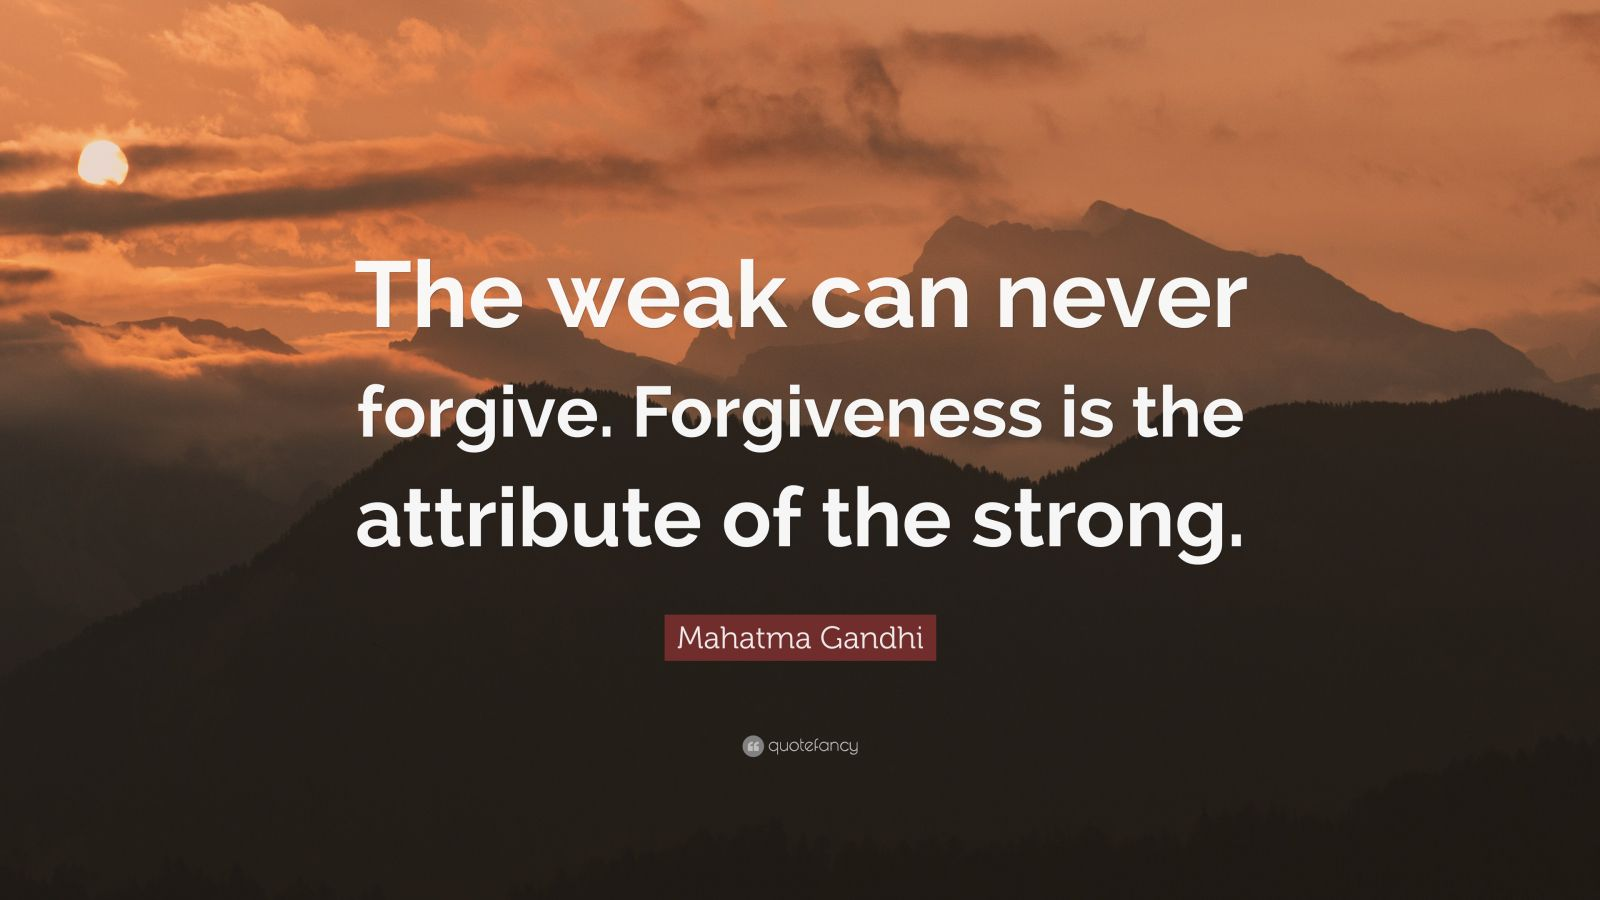 "Forgiveness Quotes: ""The weak can never forgive. Forgiveness is the attribute of the strong."" — Mahatma Gandhi"